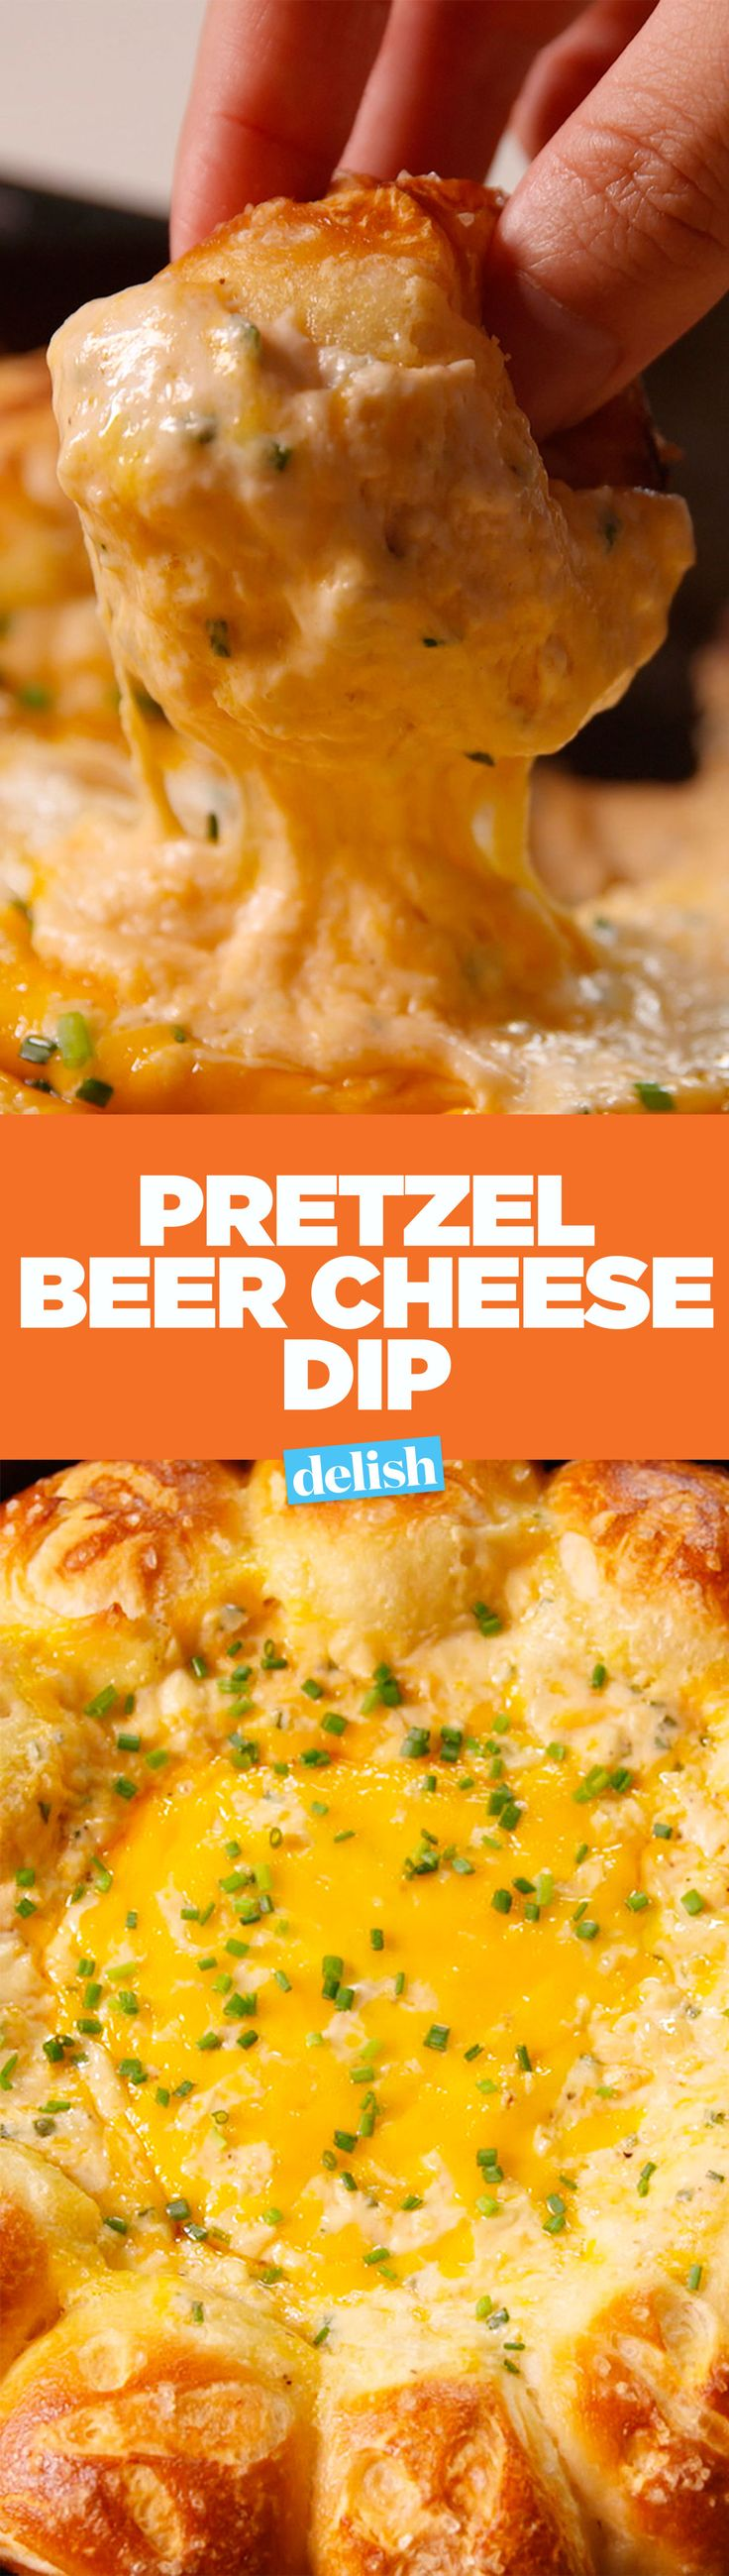 Pretzel Beer Cheese Dip Is Proof You Can Pretzel At Home  - Delish.com